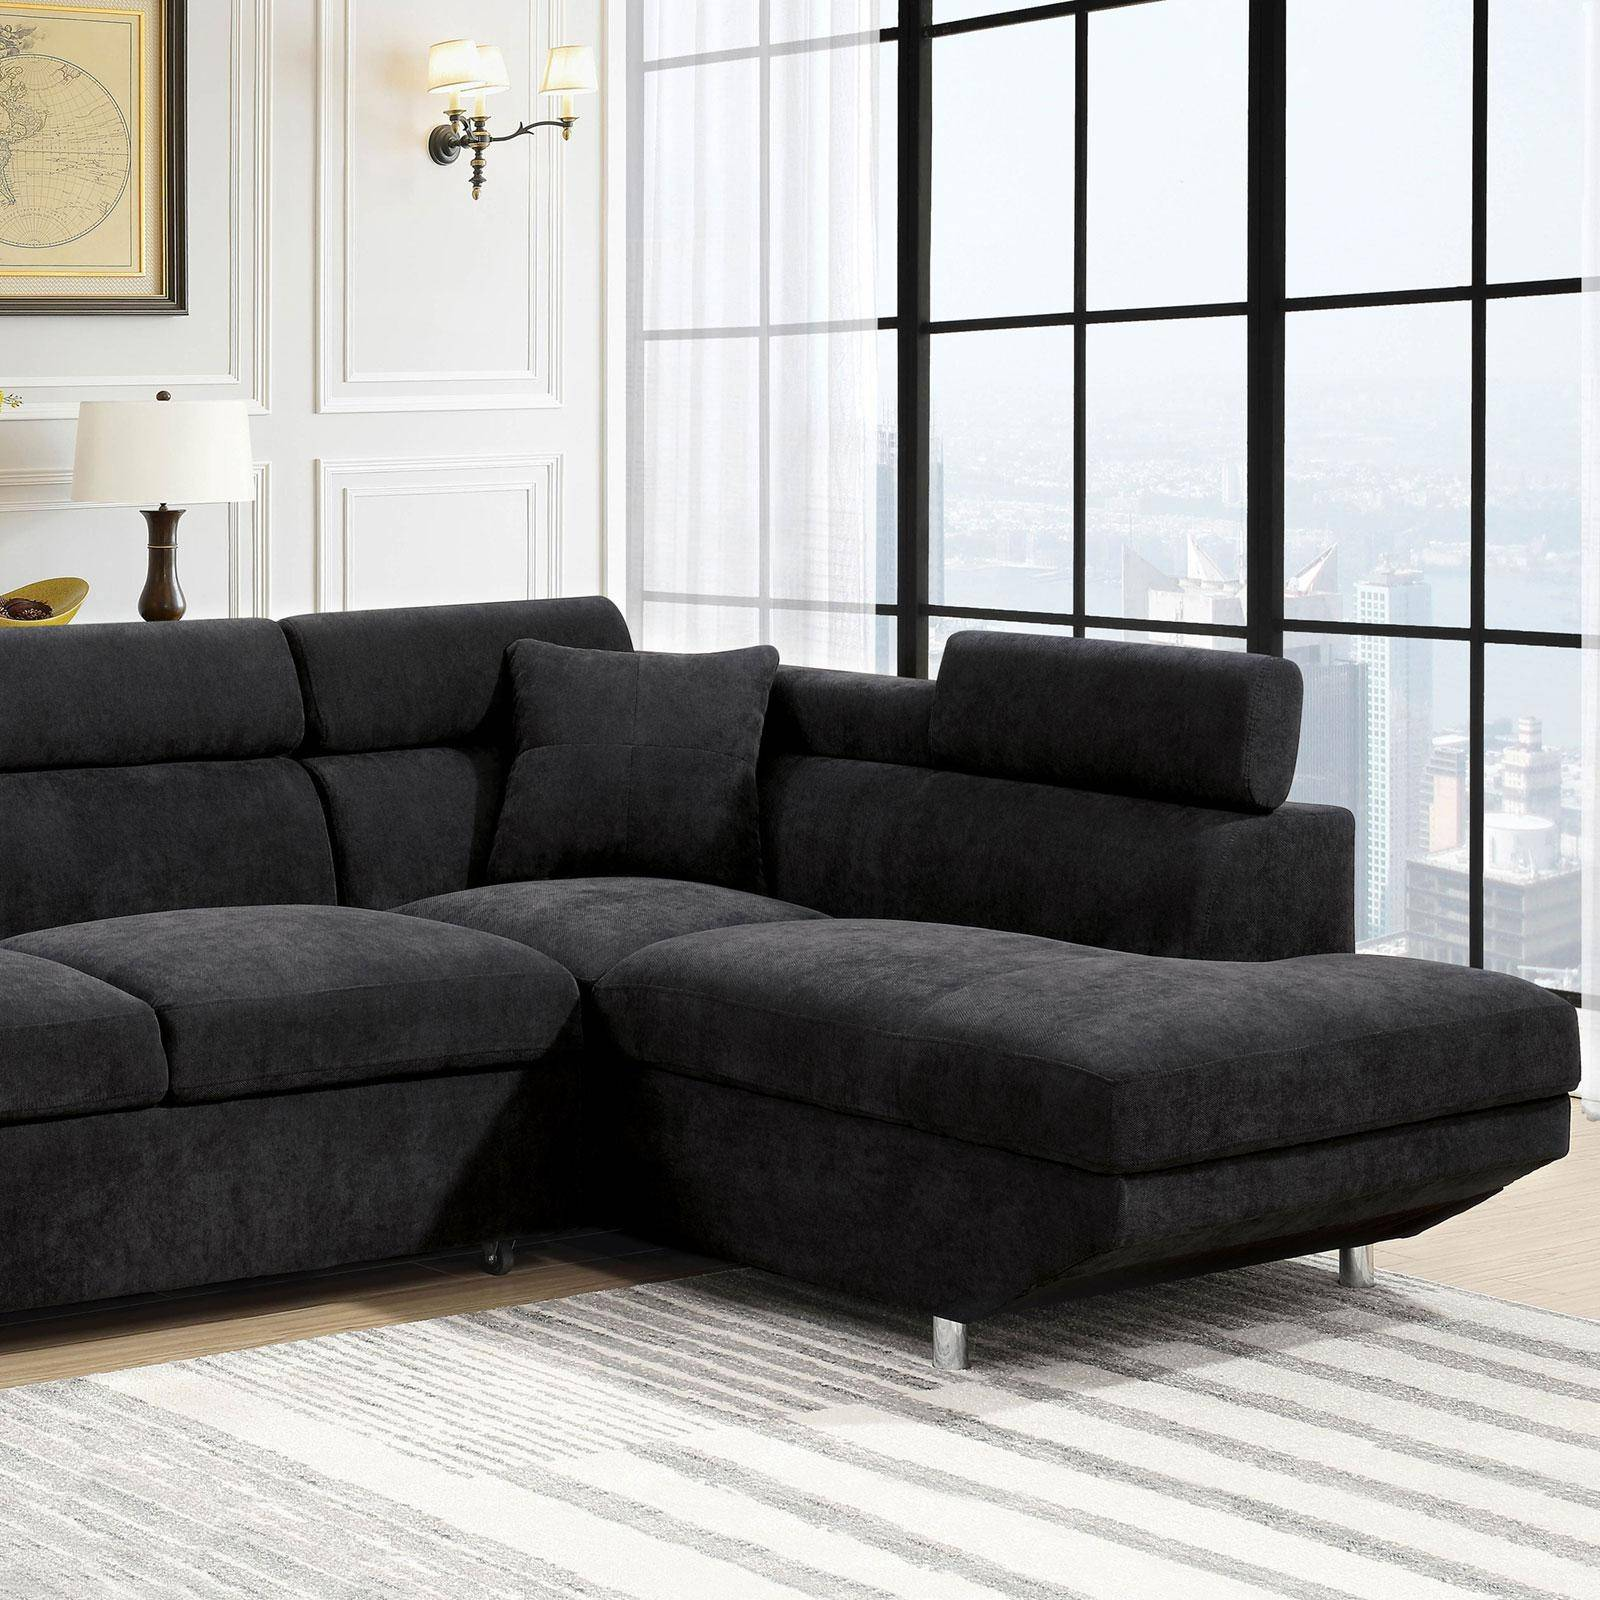 Contemporary Fabric Upholstery Sectional In Black Foreman